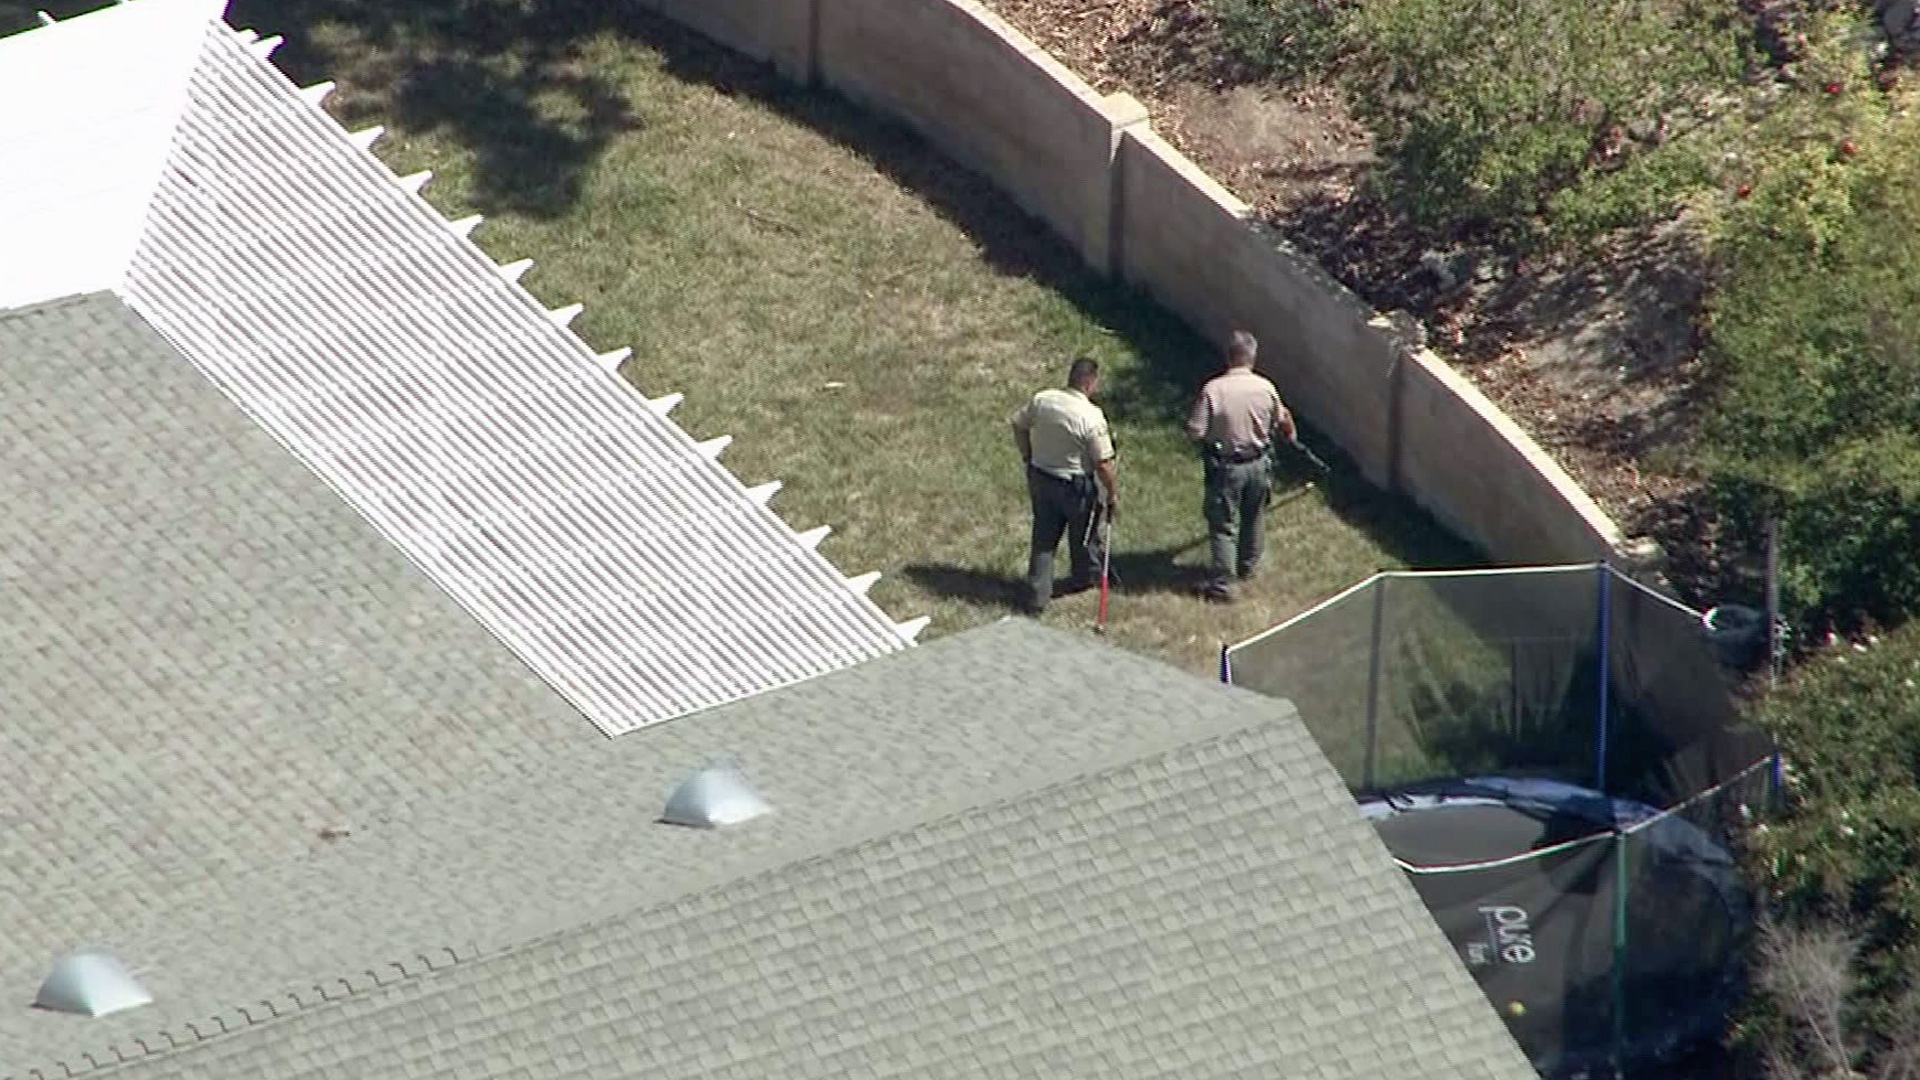 Officials search for a cobra in Thousand Oaks on Wednesday, Sept. 3, 2014.